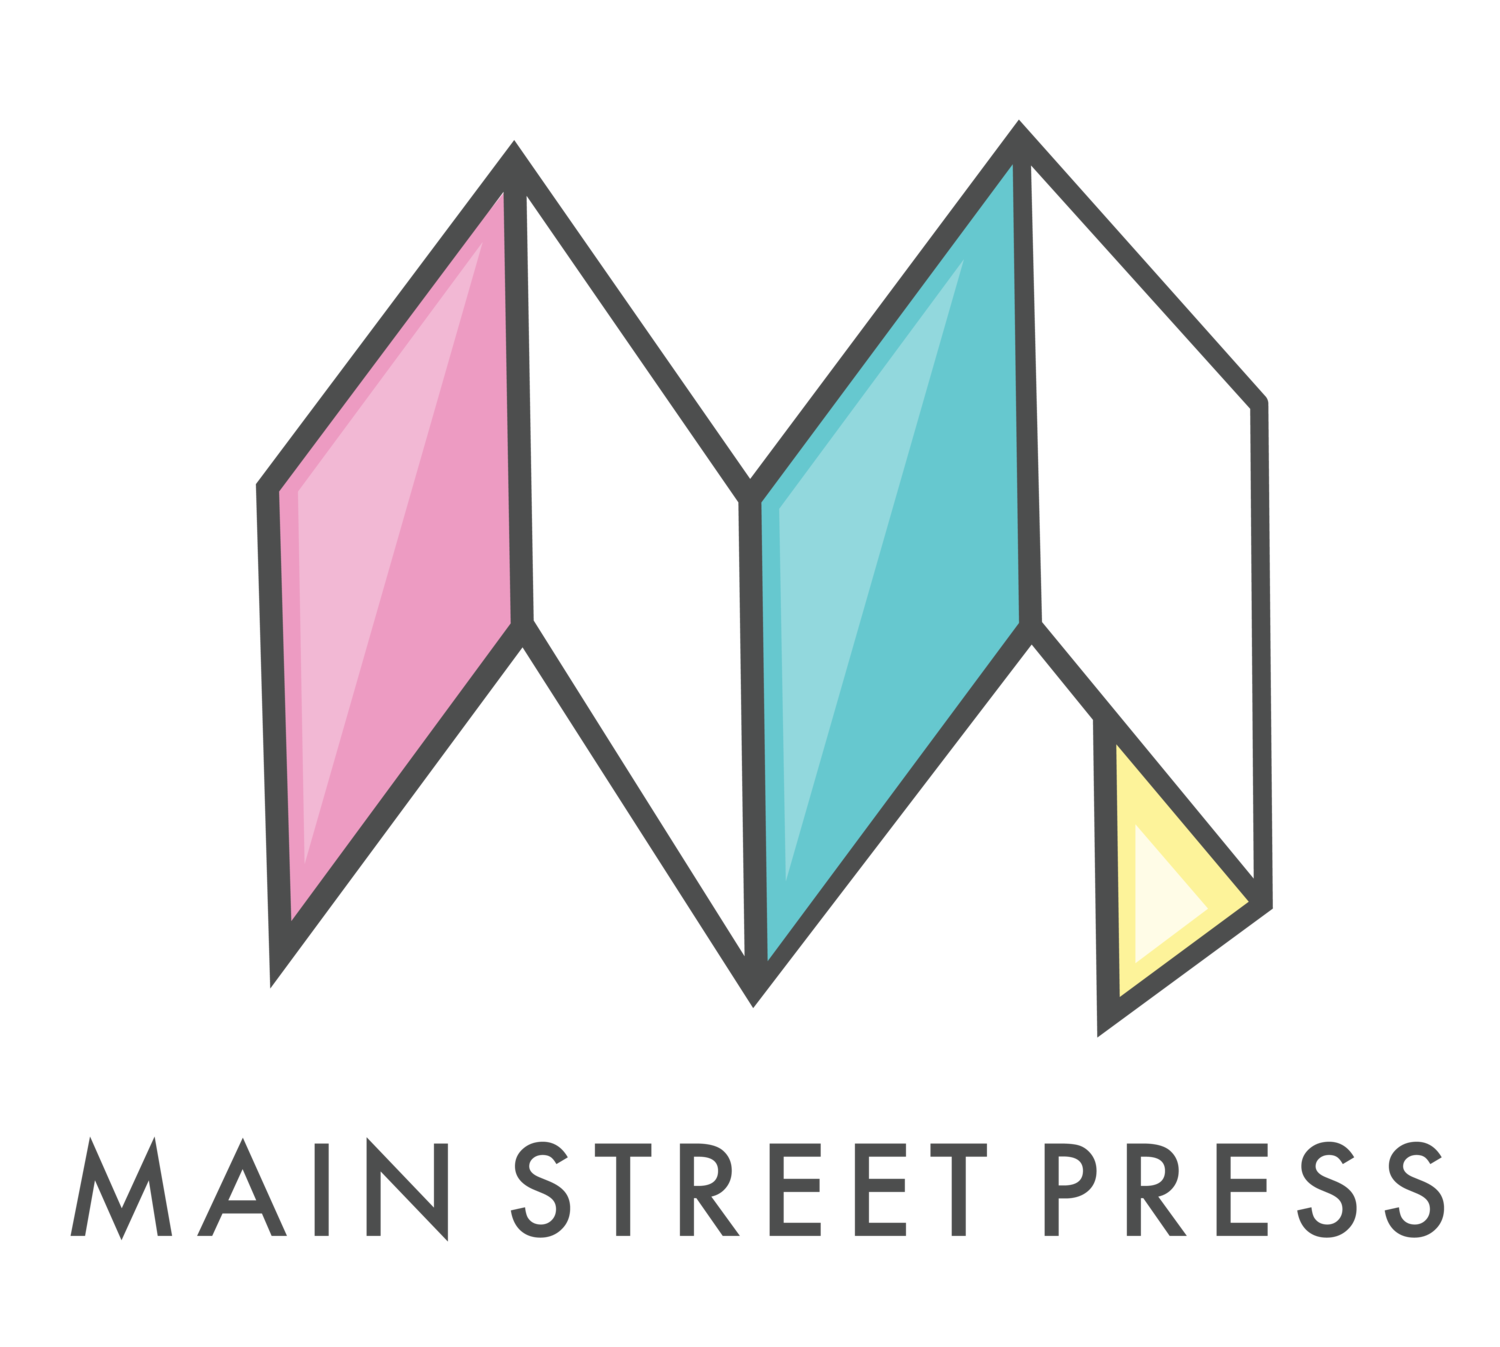 The Main Street Press